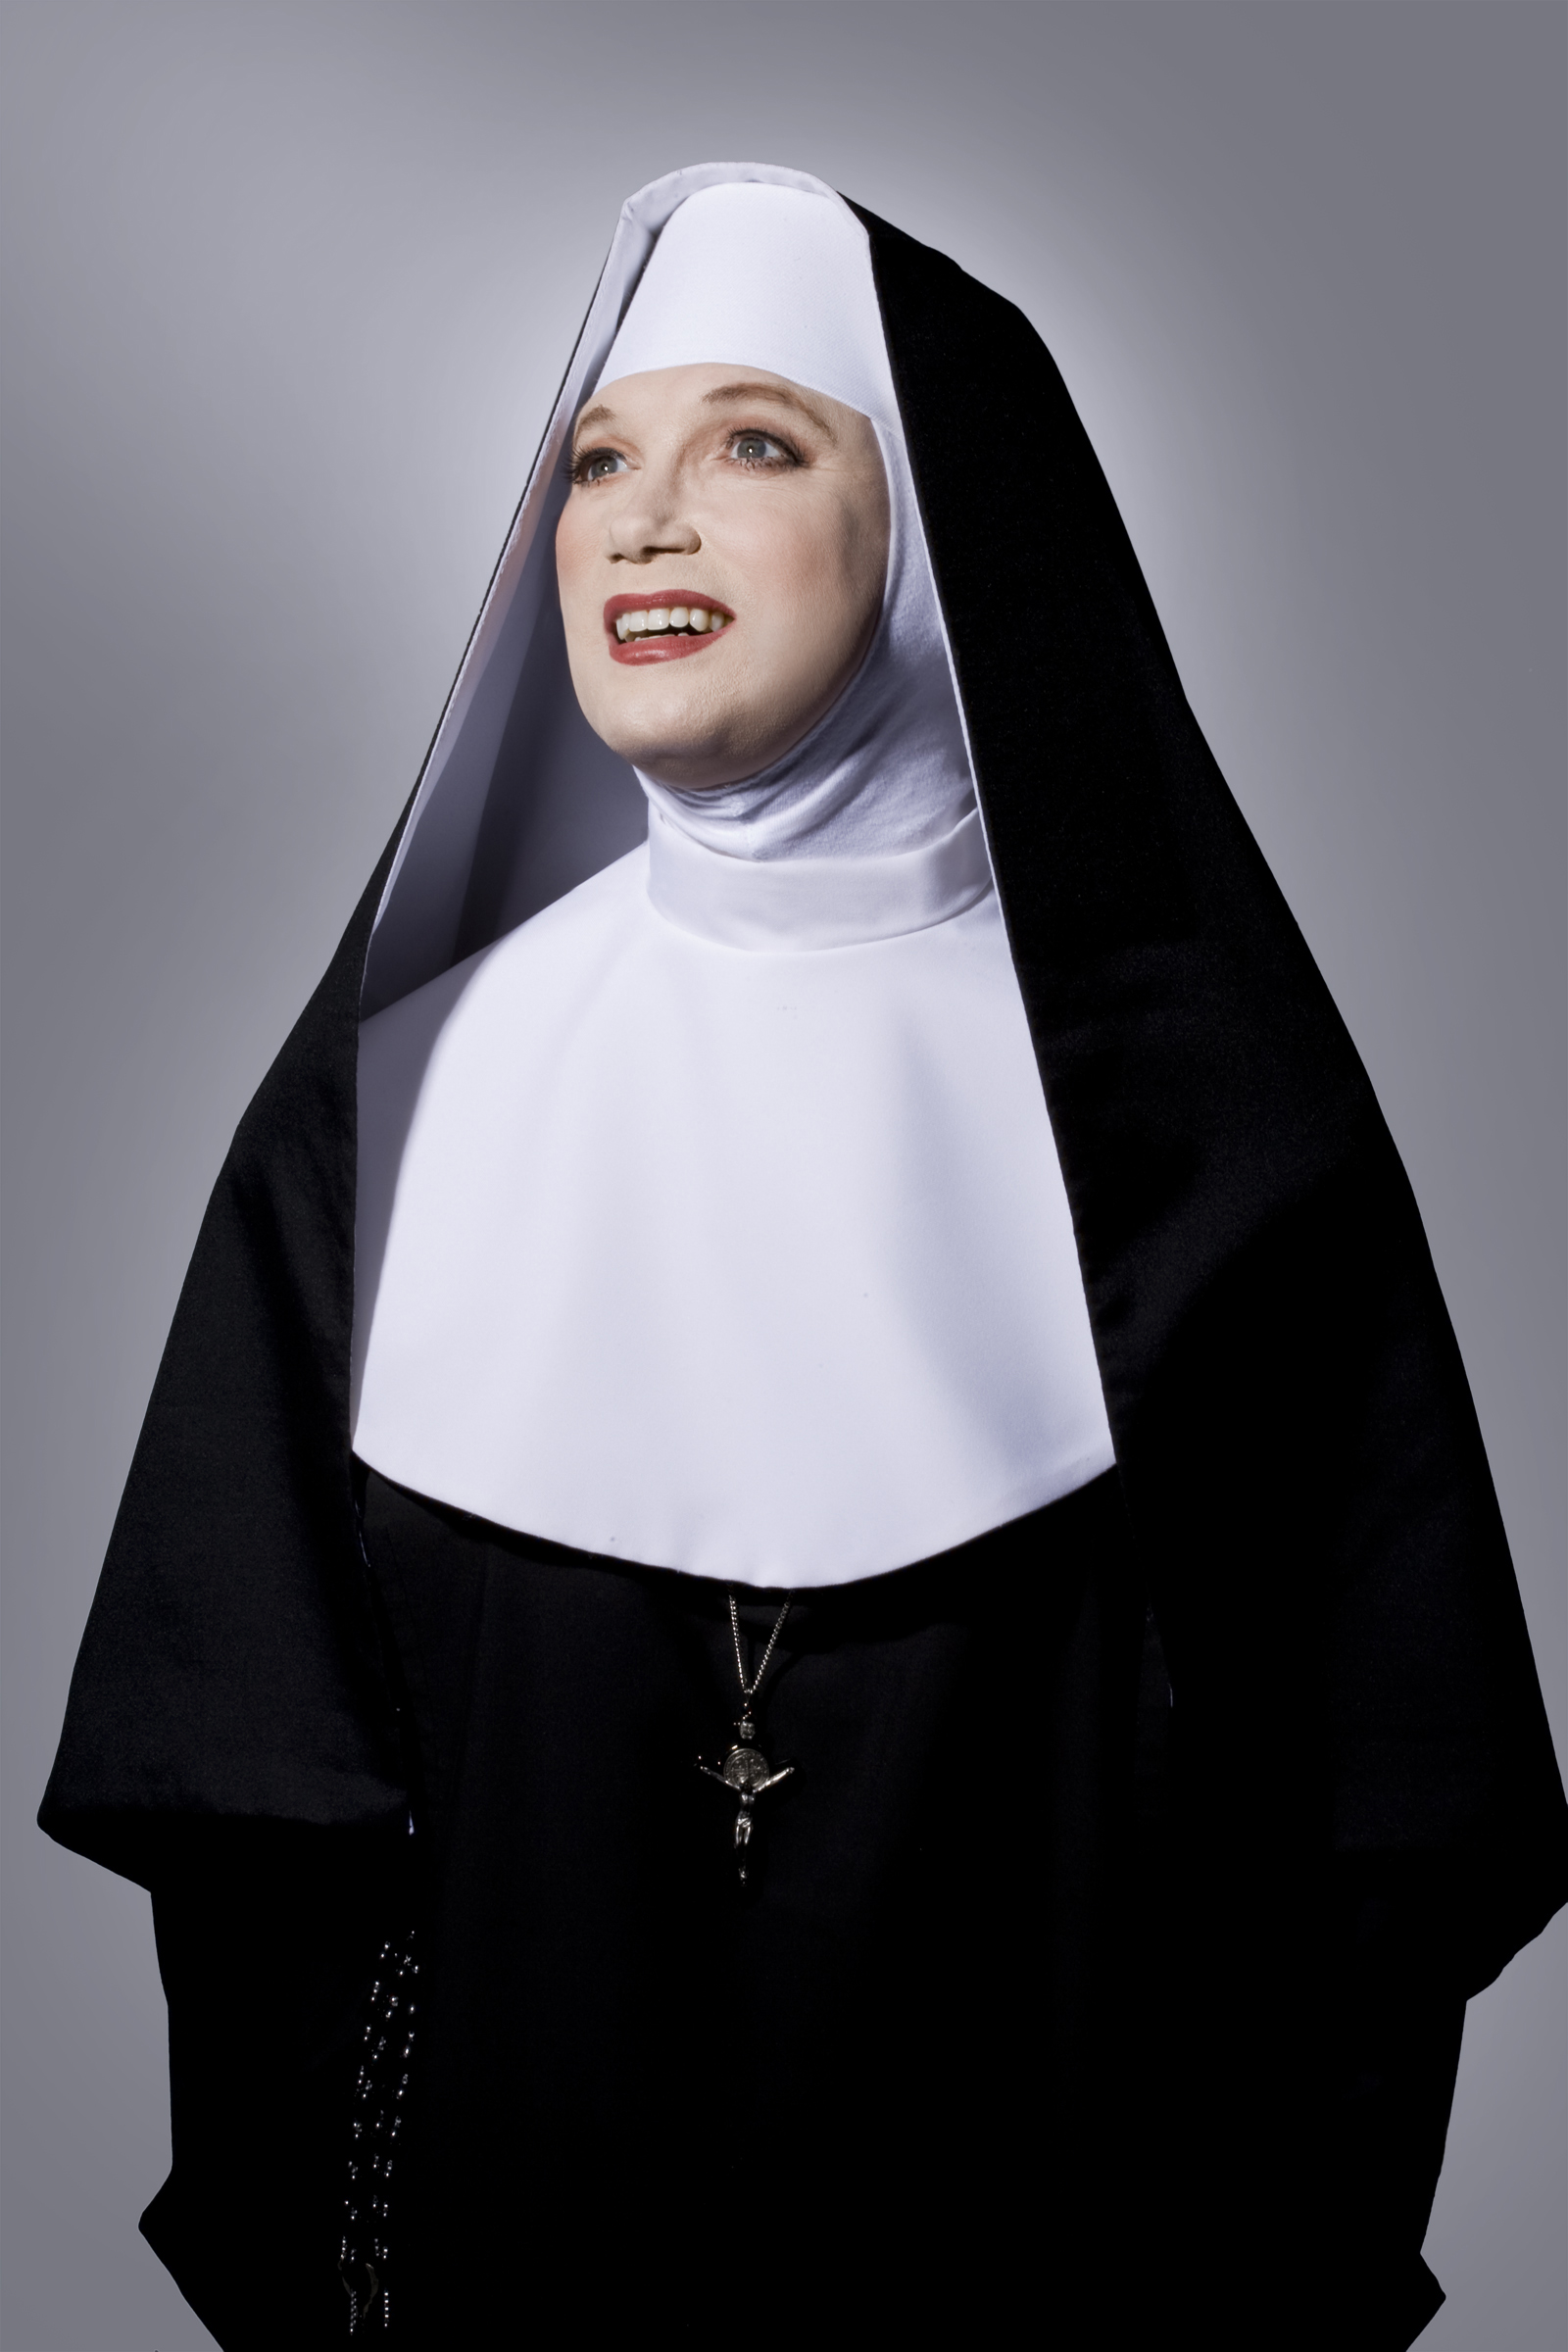 convent sex chat Meet tons of available women in convent on mingle2com — the best online dating site for convent singles sign up now for immediate access to our convent personal ads and find hundreds of attractive single women looking for love, sex, and fun in convent.